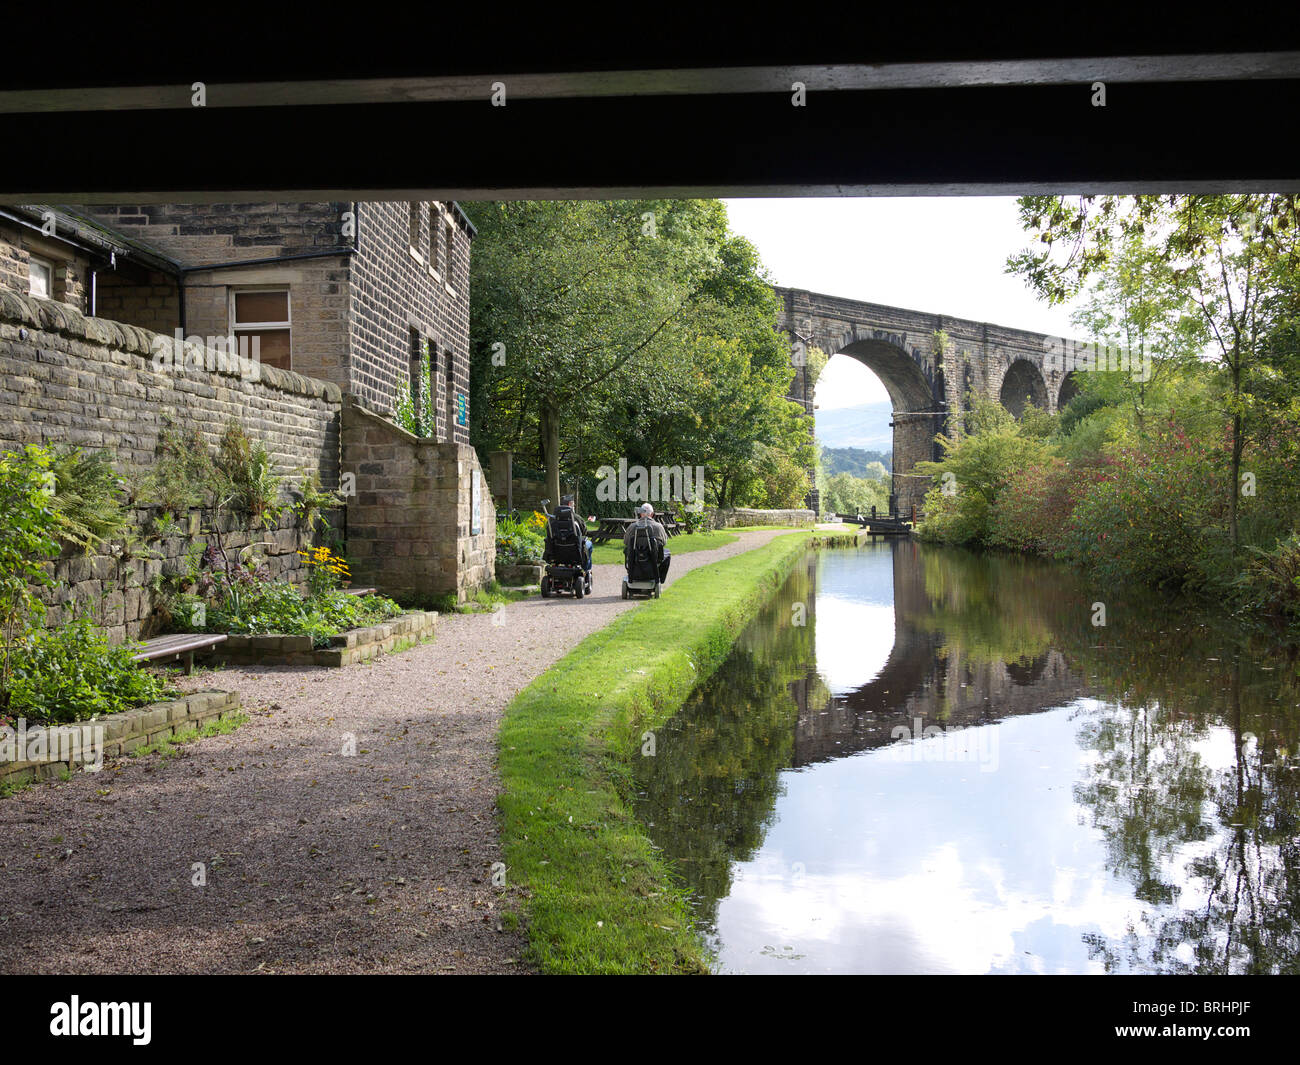 Two men on invalid vehicles on canal towpath, Uppermill, Saddleworth,Oldham, England, UK. - Stock Image